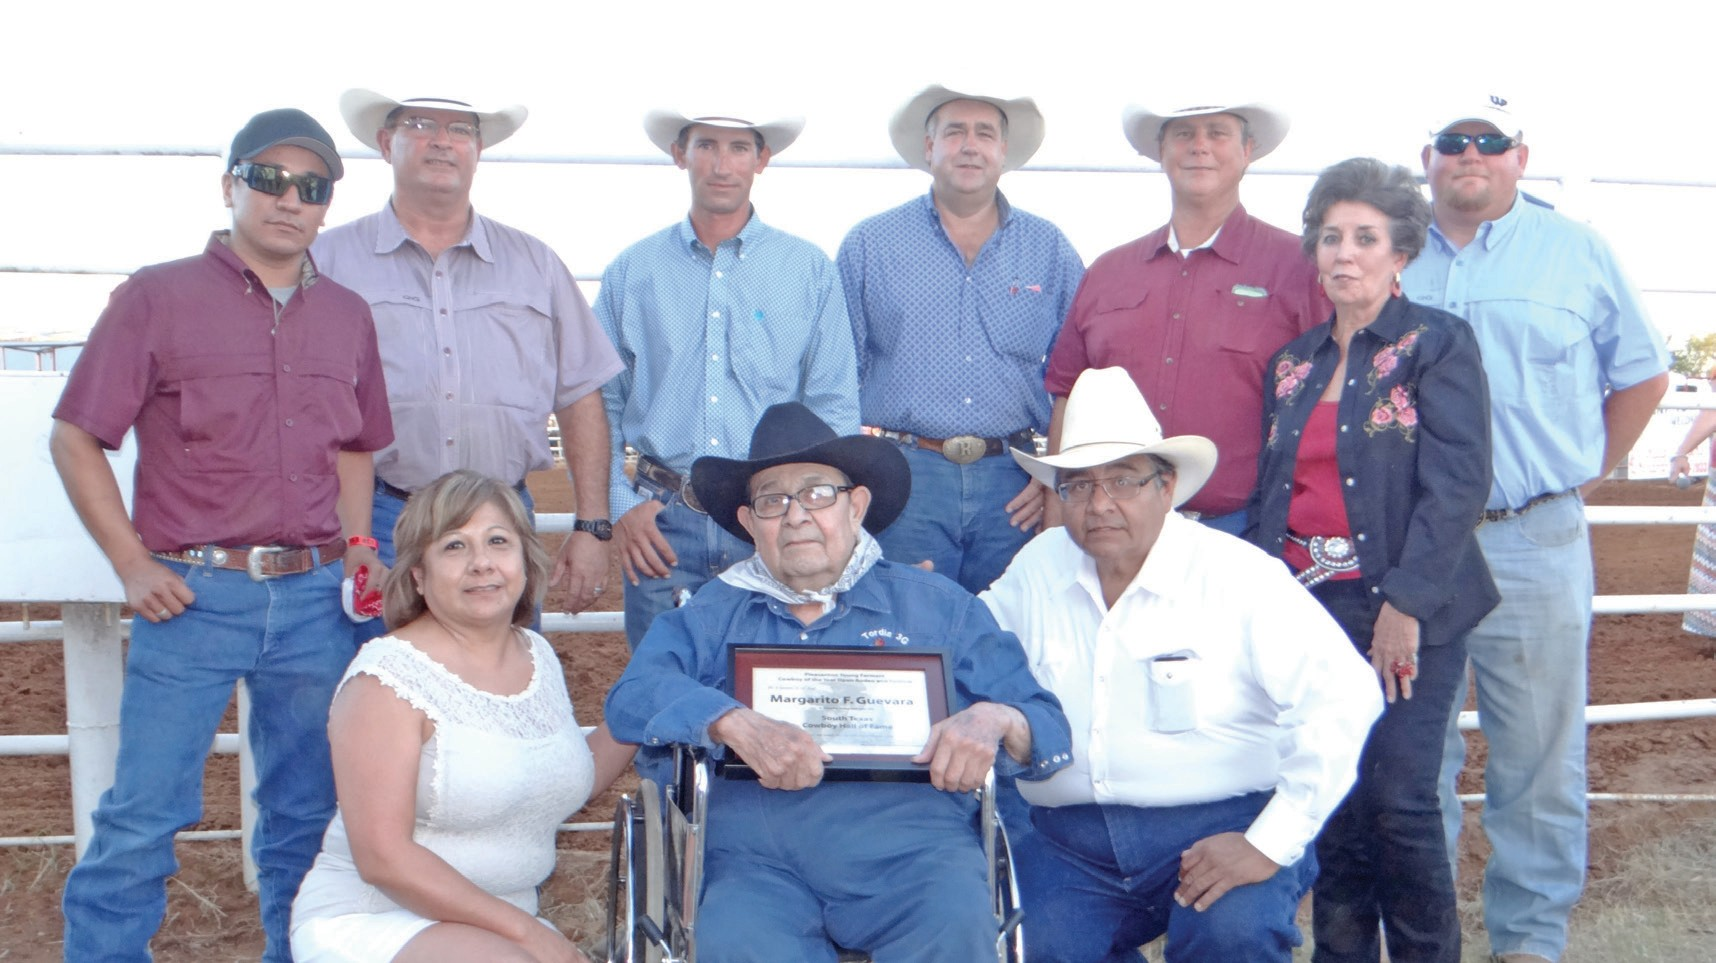 Margarito F. Guevara, seated, receives his certificate during his induction into the South Texas Cowboy Hall of Fame before the Pleasanton Young Farmers' Cowboy of the Year Open Rodeo on August 15. He is flanked by his daughter Margie Guevara-Clark and son Miguel Guevara. Helping with the presentation are, left to right, Jorge Quiroga, Pleasanton Chamber, David McDaniel (Cowboy of the Year 1997) Dustin Neal, President Pleasanton Young Farmers; Randy Rice, Pleasanton Young Farmers; Chico Cox, Texas Moore and Wade McBee, Pleasanton Chamber.